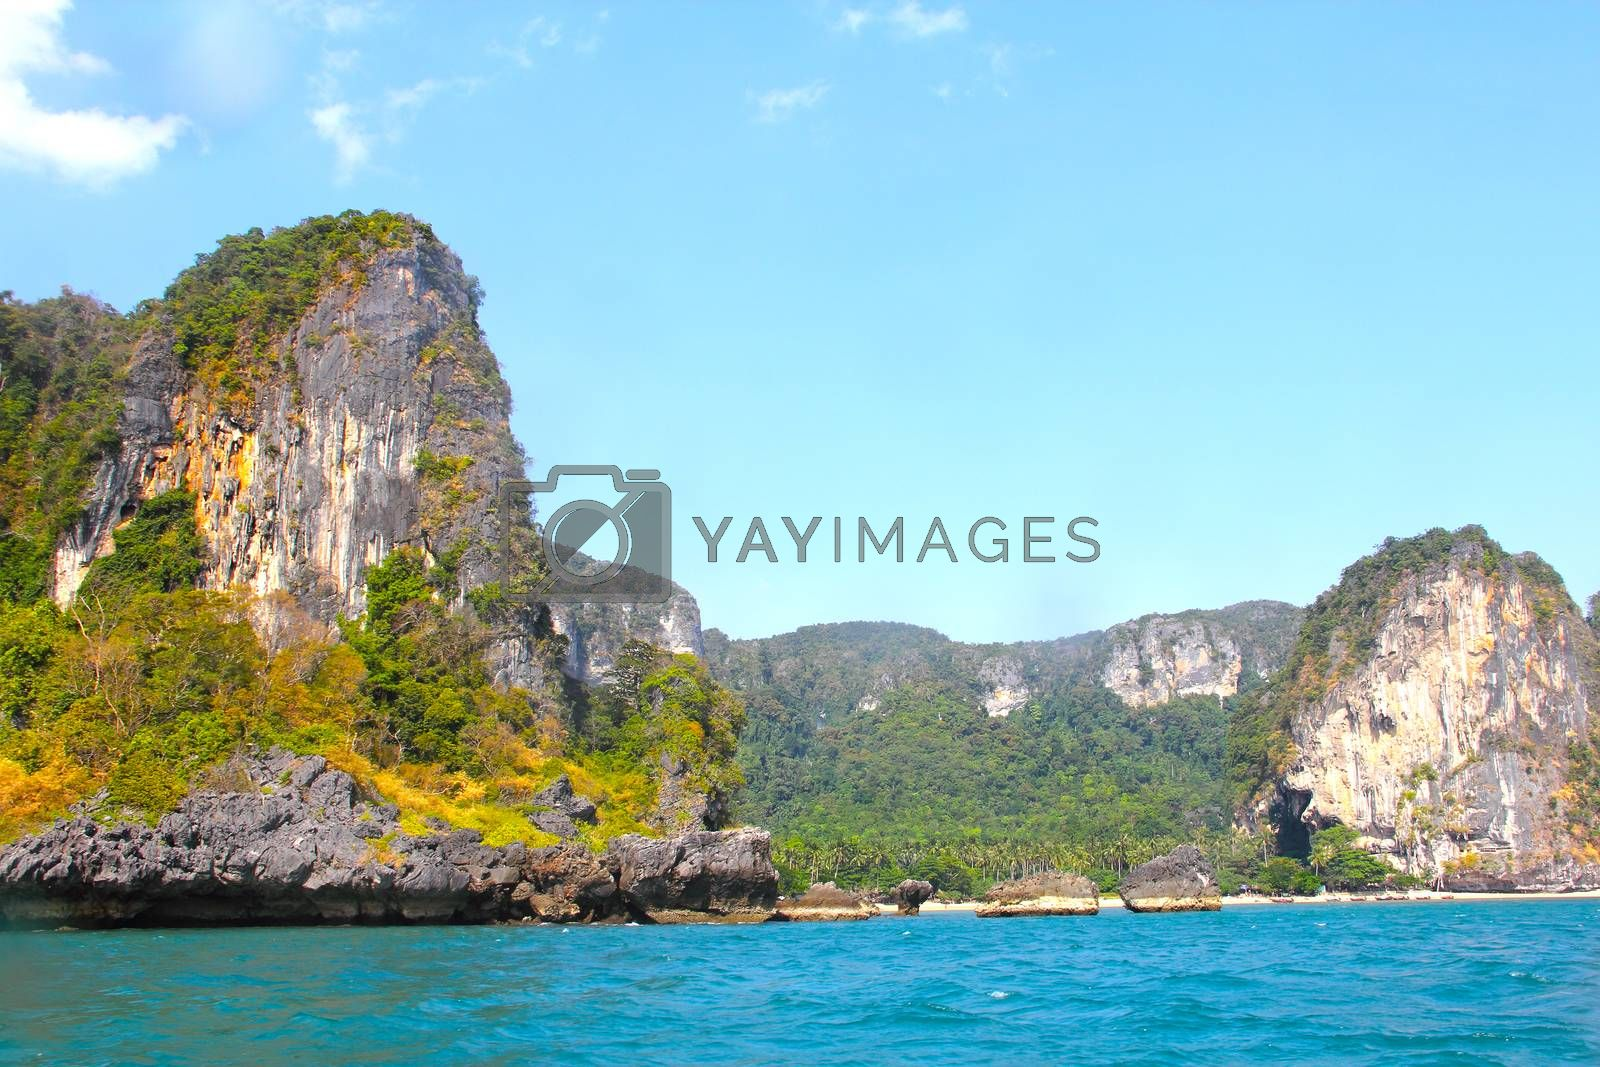 Royalty free image of Island in Thailand by destillat